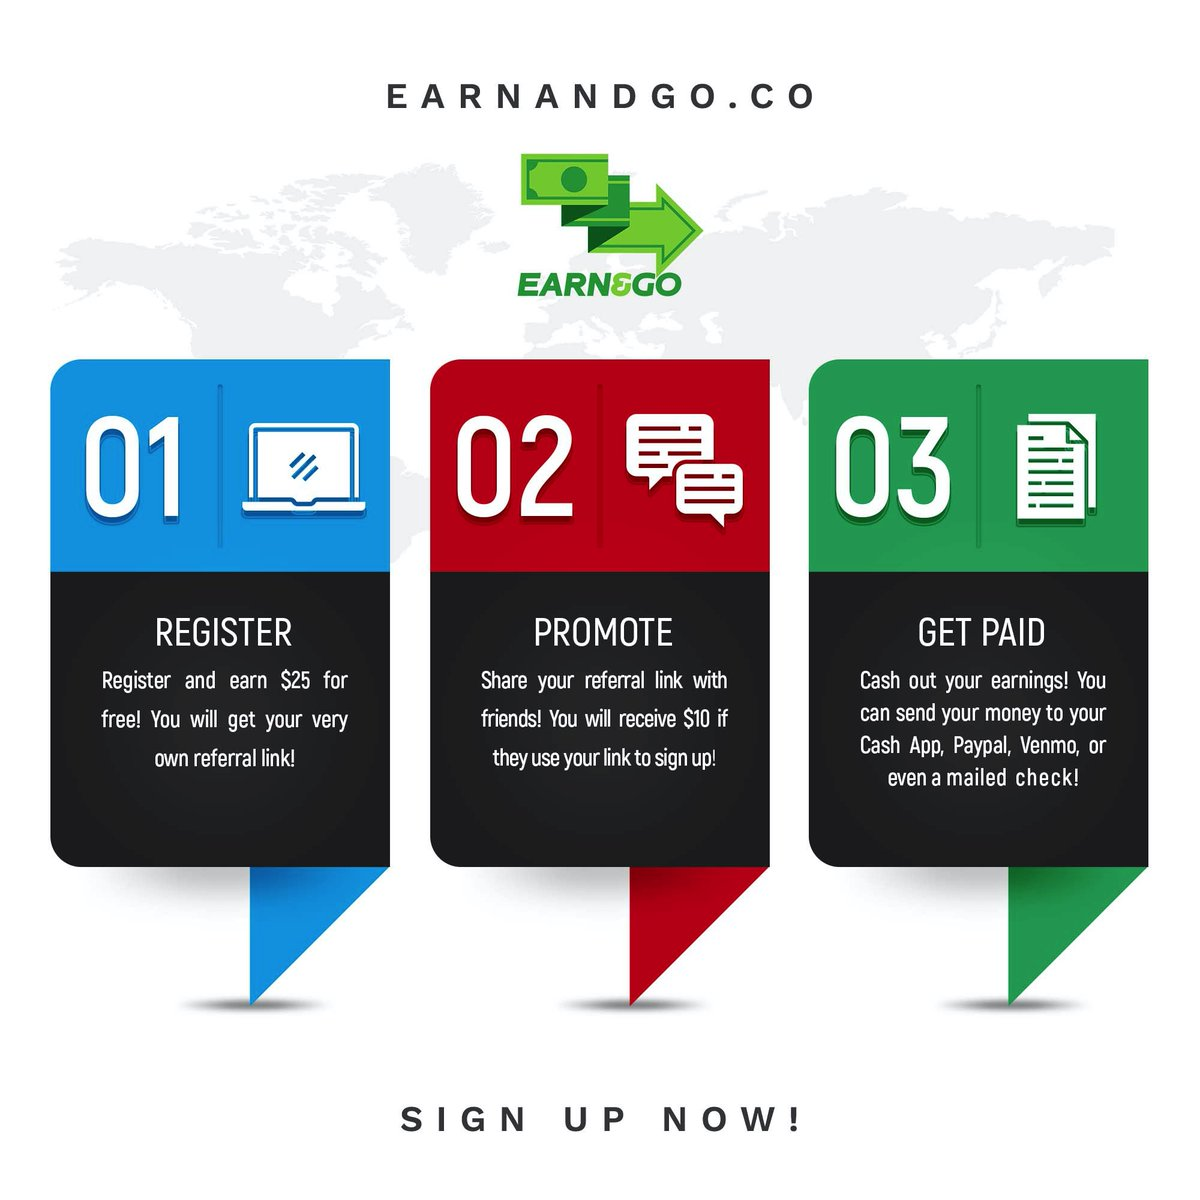 https://share.earnandgo.co/Lulu9217  I'm inviting you to join Earn And Go, a site that lets you earn money with social media. I just earned $708.27 and you can too! Sign up today for a $50 bonus! https://share.earnandgo.co/Lulu9217pic.twitter.com/c9y0BYALXt